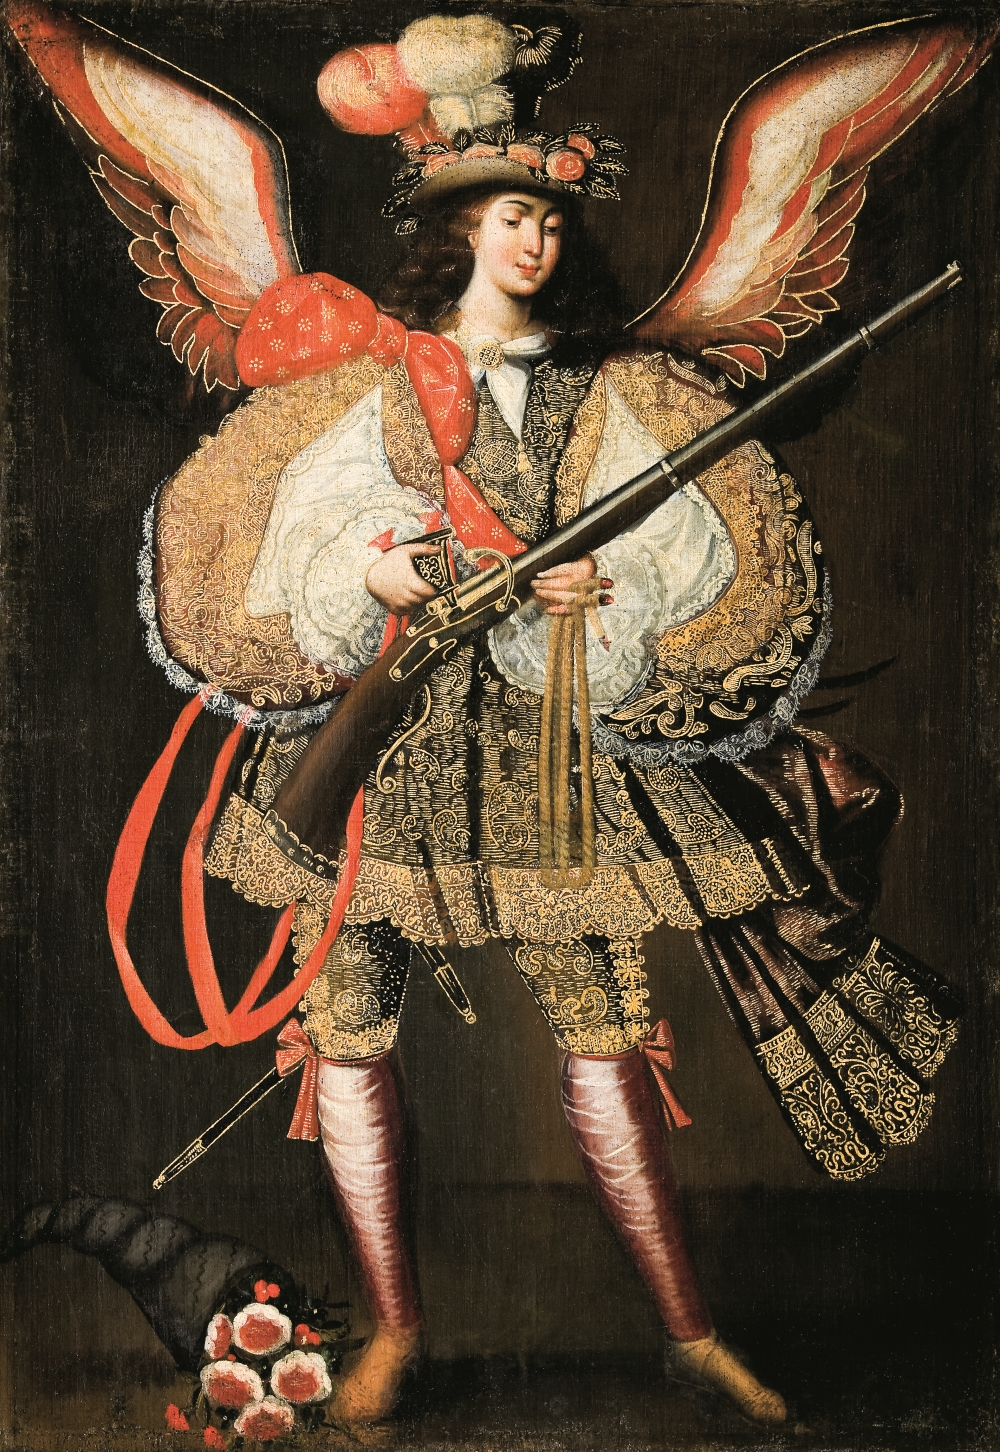 Anonymous Cuzco artist, Archangel with Harquebusier, ca. 1690-1720.